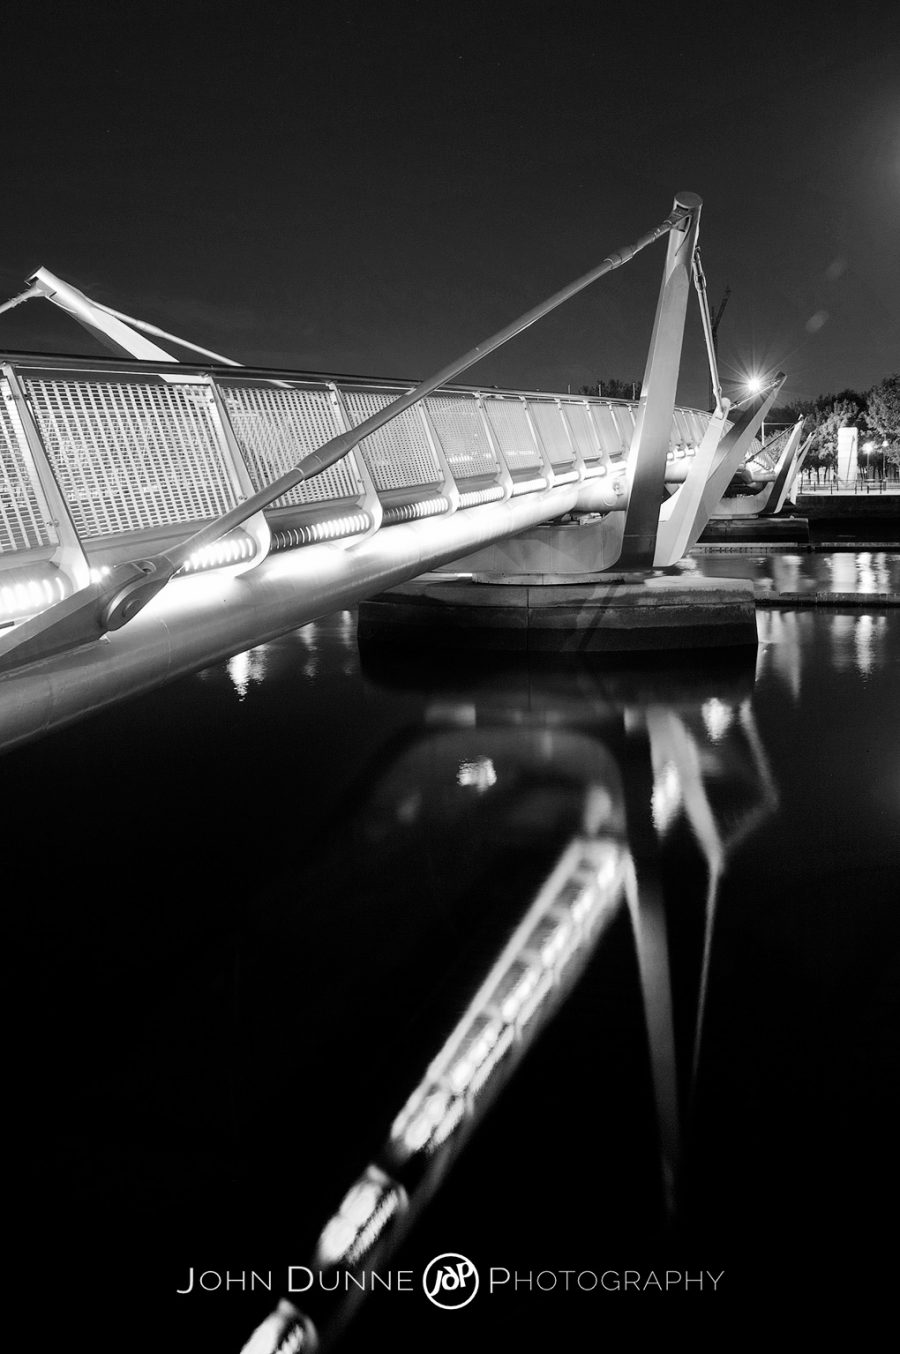 Spanning the Darkness by John Dunne 2008.